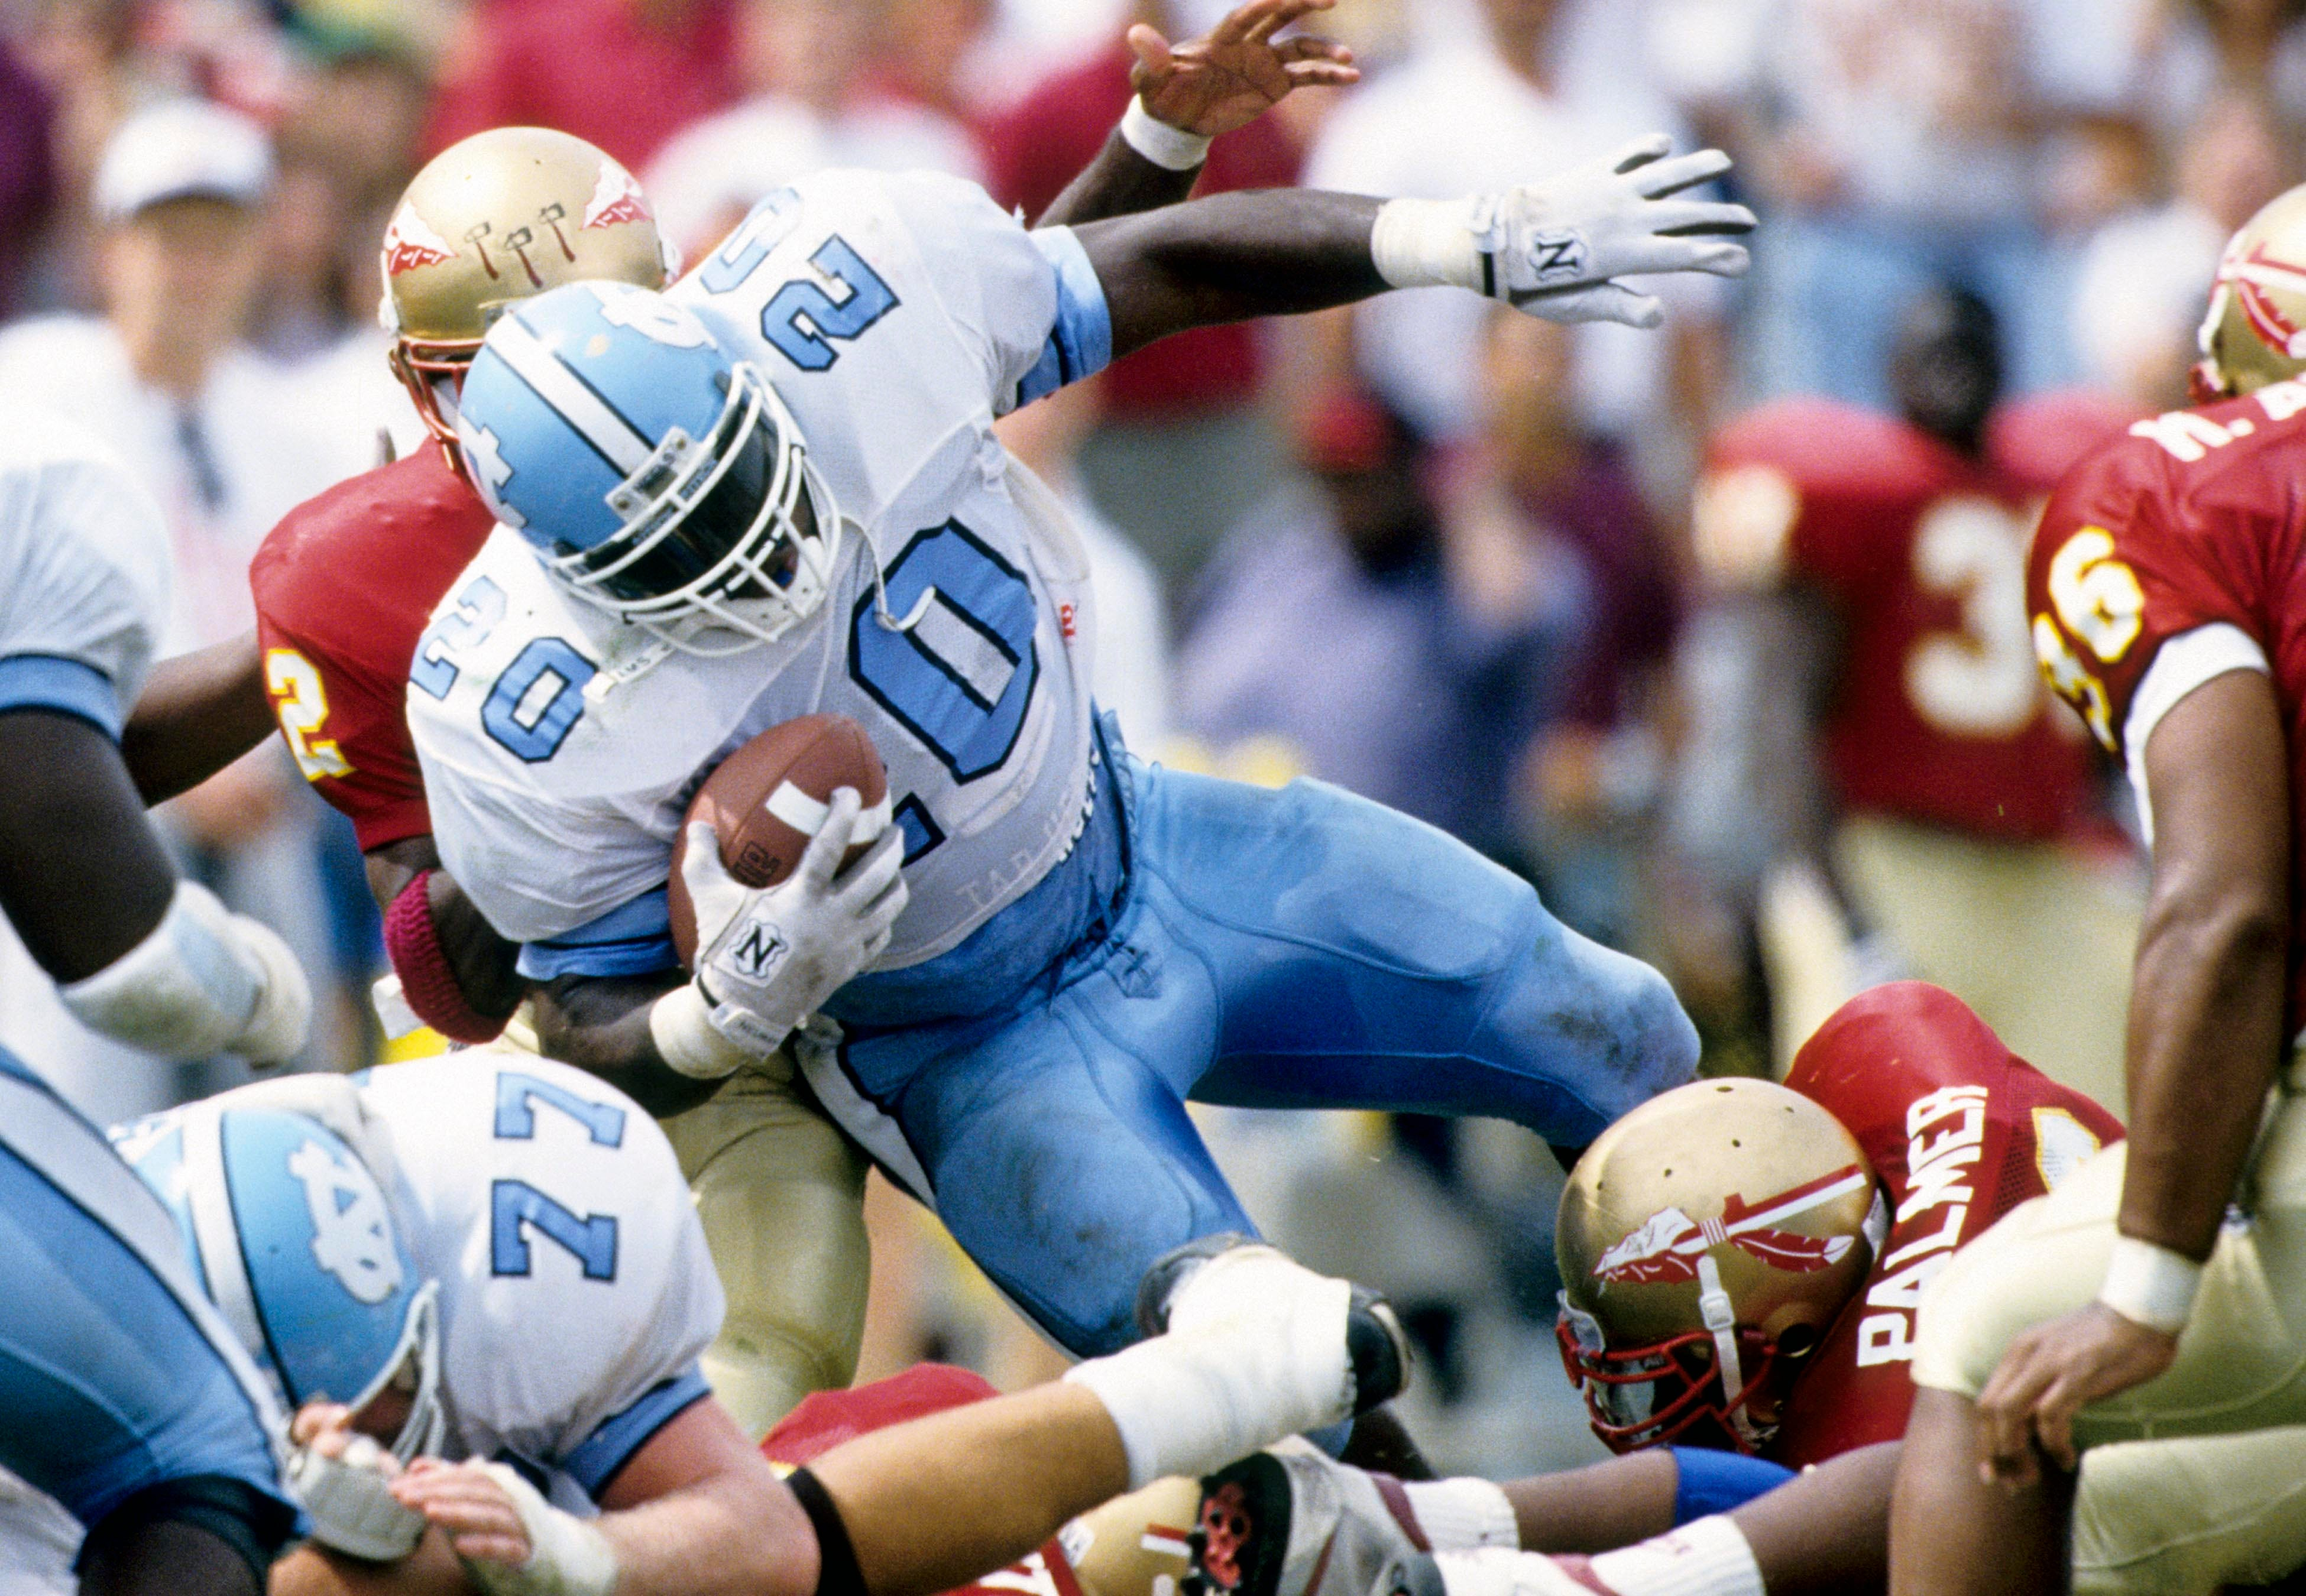 Oct 10, 1992; Tallahassee, FL, USA; FILE PHOTO;  North Carolina Tar Heels running back Natrone Means (20) in action against the Florida State Seminoles at Doak Campbell Stadium. Mandatory Credit: RVR Photos-USA TODAY Sports